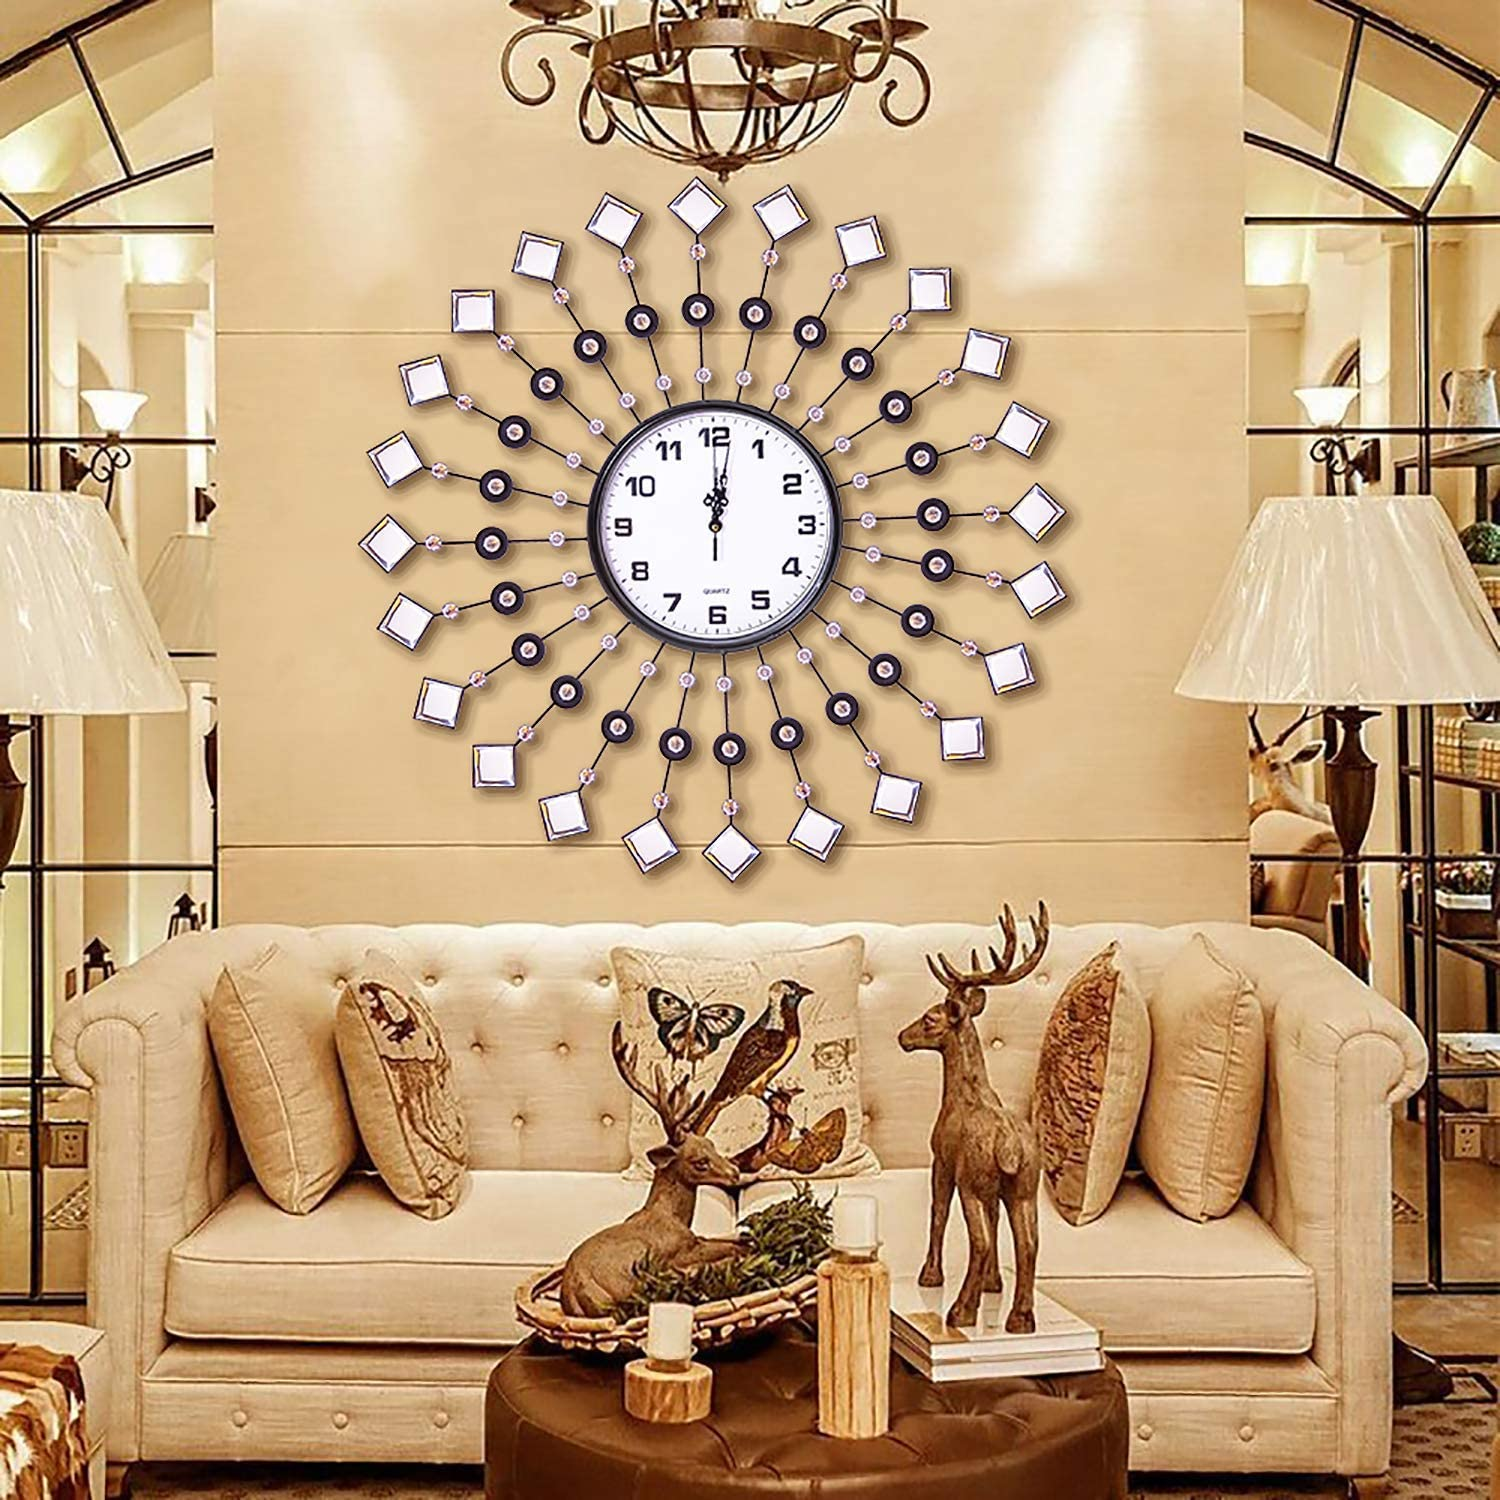 Amazon Com Ahua Modern Metal Crystal Wall Clock Luxury Diamond Morden Large Wall Clock Design Home Decor Decorative Clock For Living Room Bedroom Office Space Crystal Home Kitchen